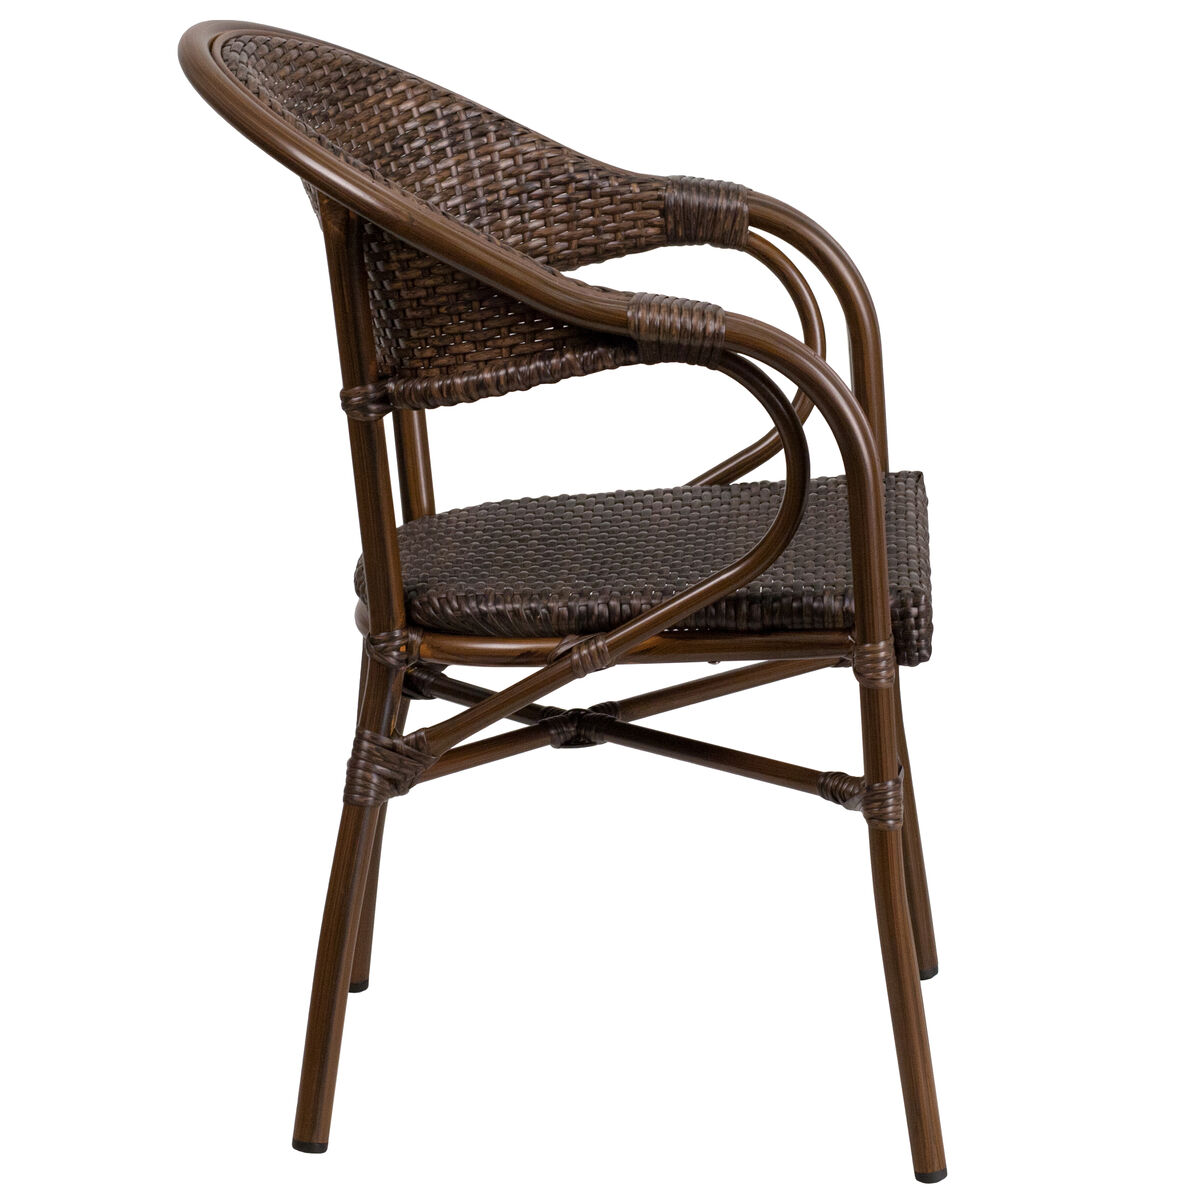 Phenomenal Milano Series Cocoa Rattan Restaurant Patio Chair With Bamboo Aluminum Frame Squirreltailoven Fun Painted Chair Ideas Images Squirreltailovenorg